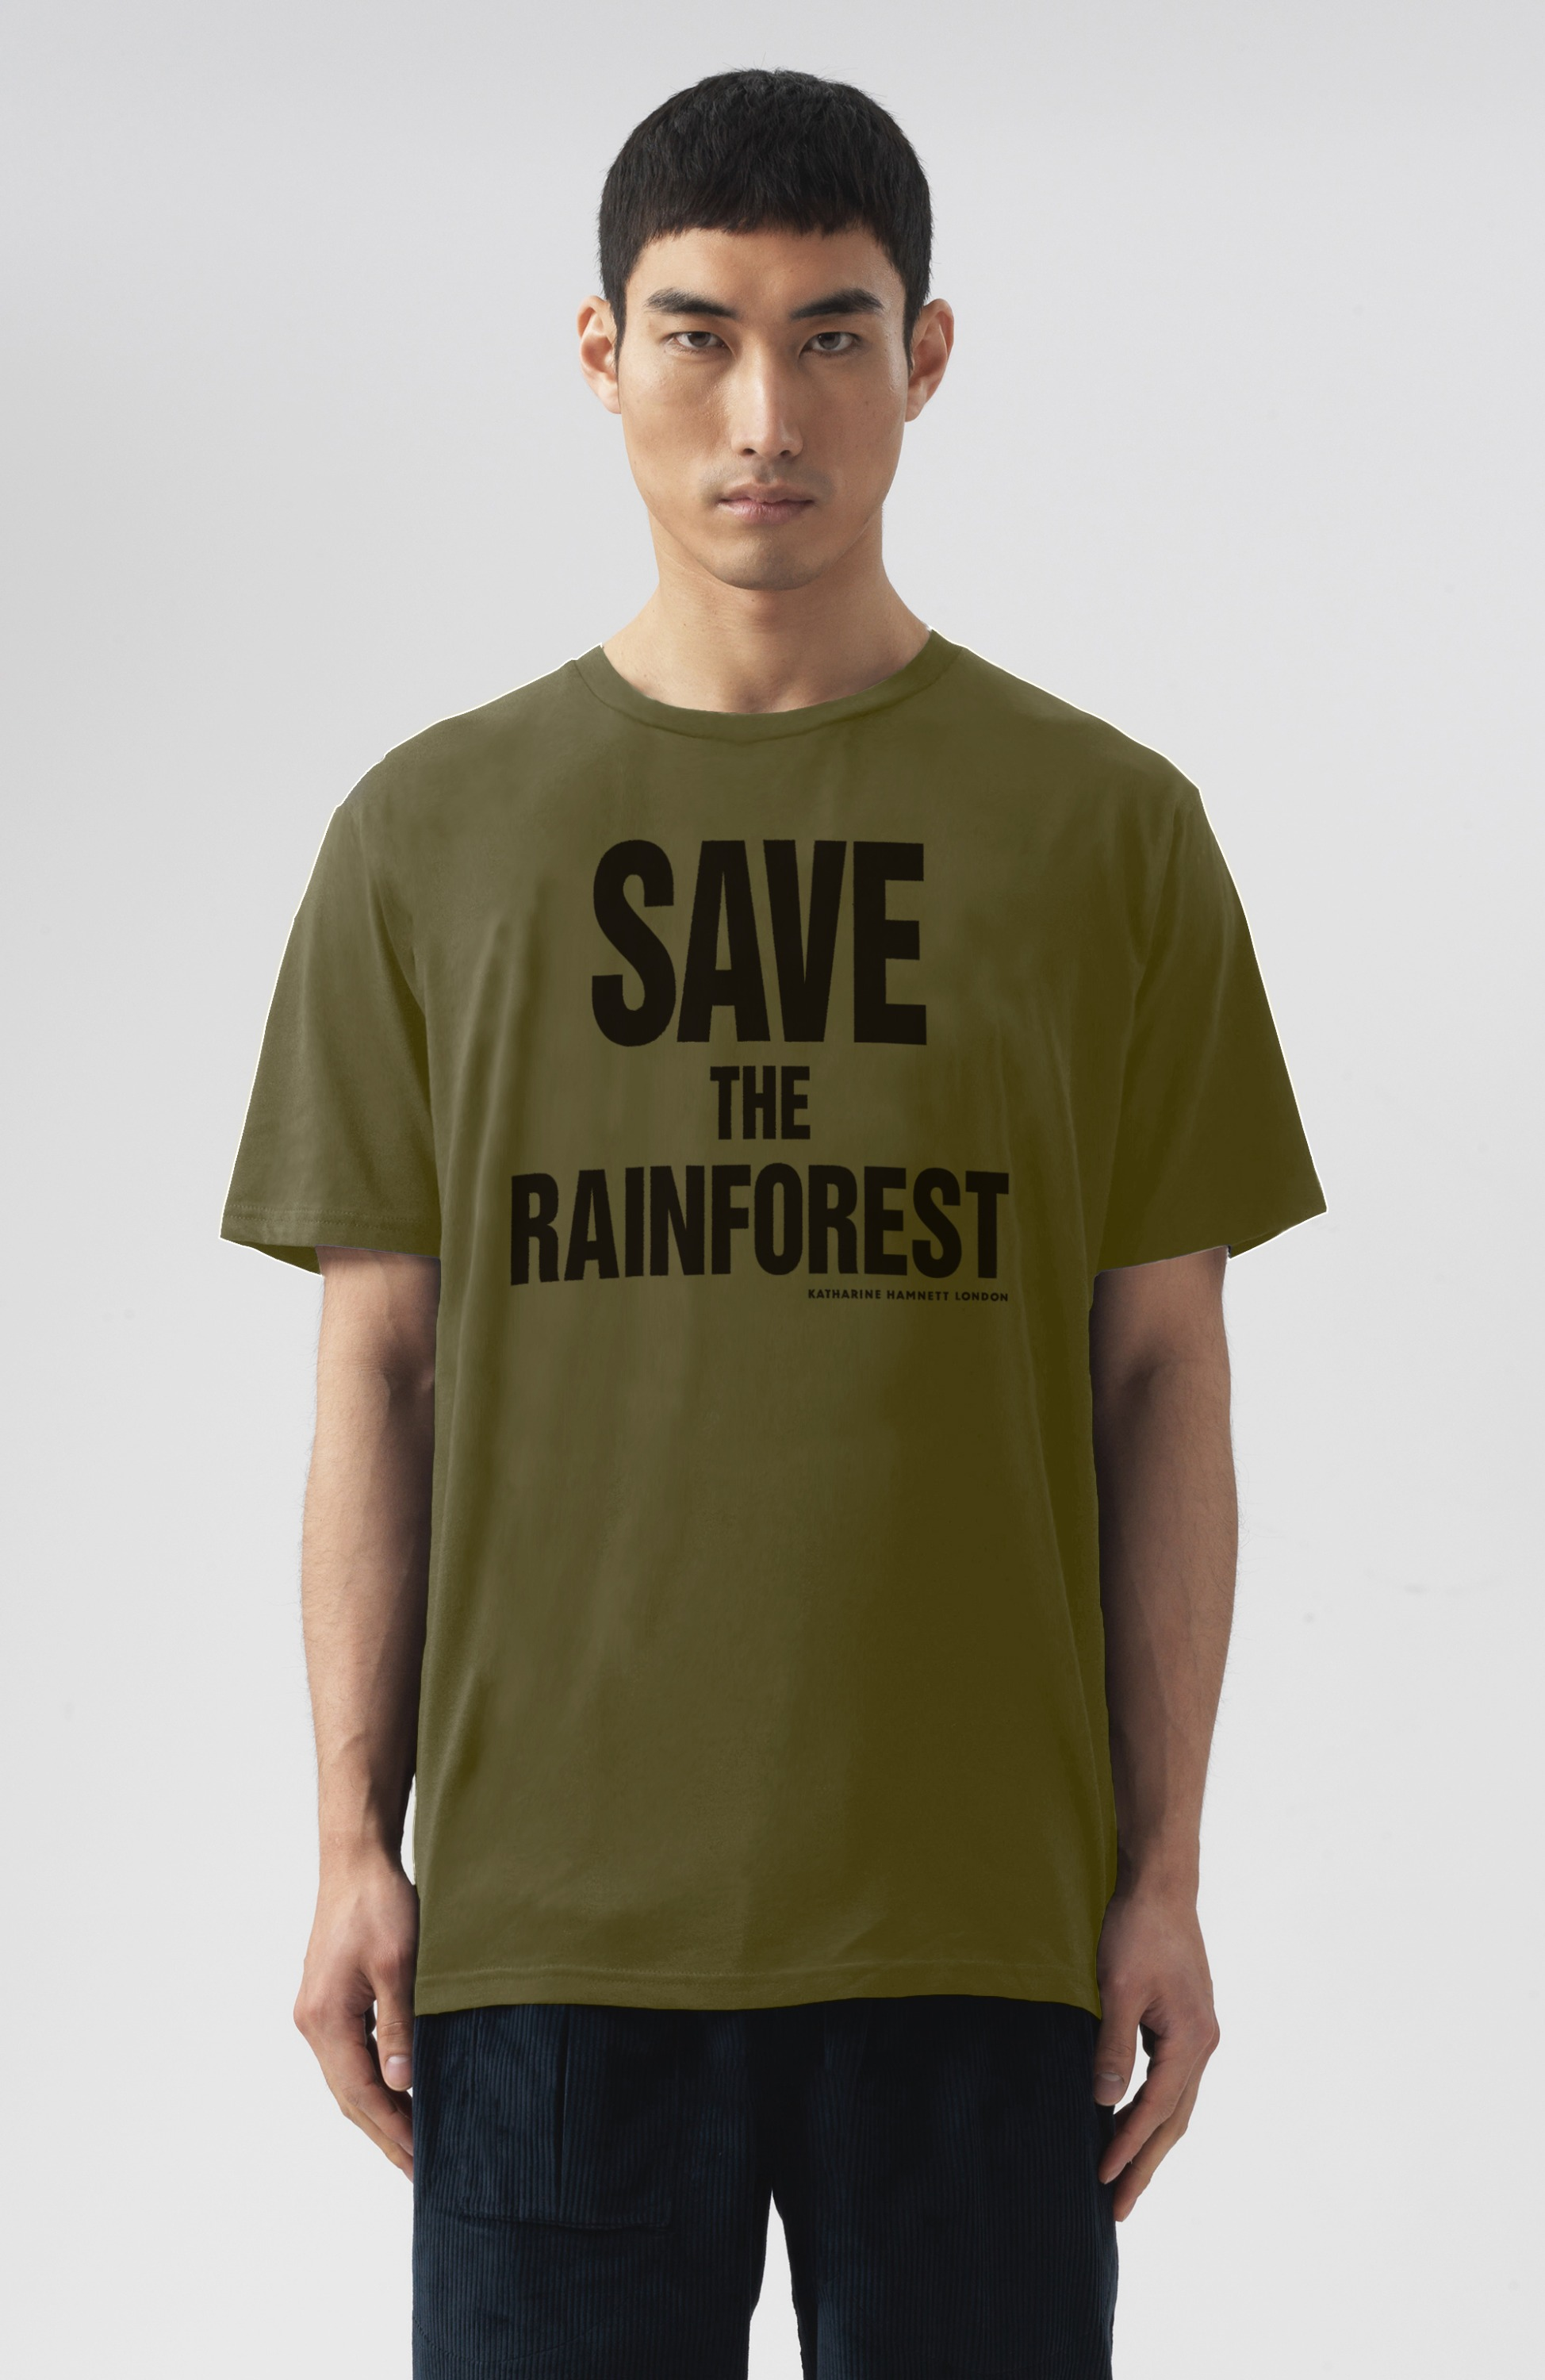 Save The Rainforest Short Sleeve T-Shirt